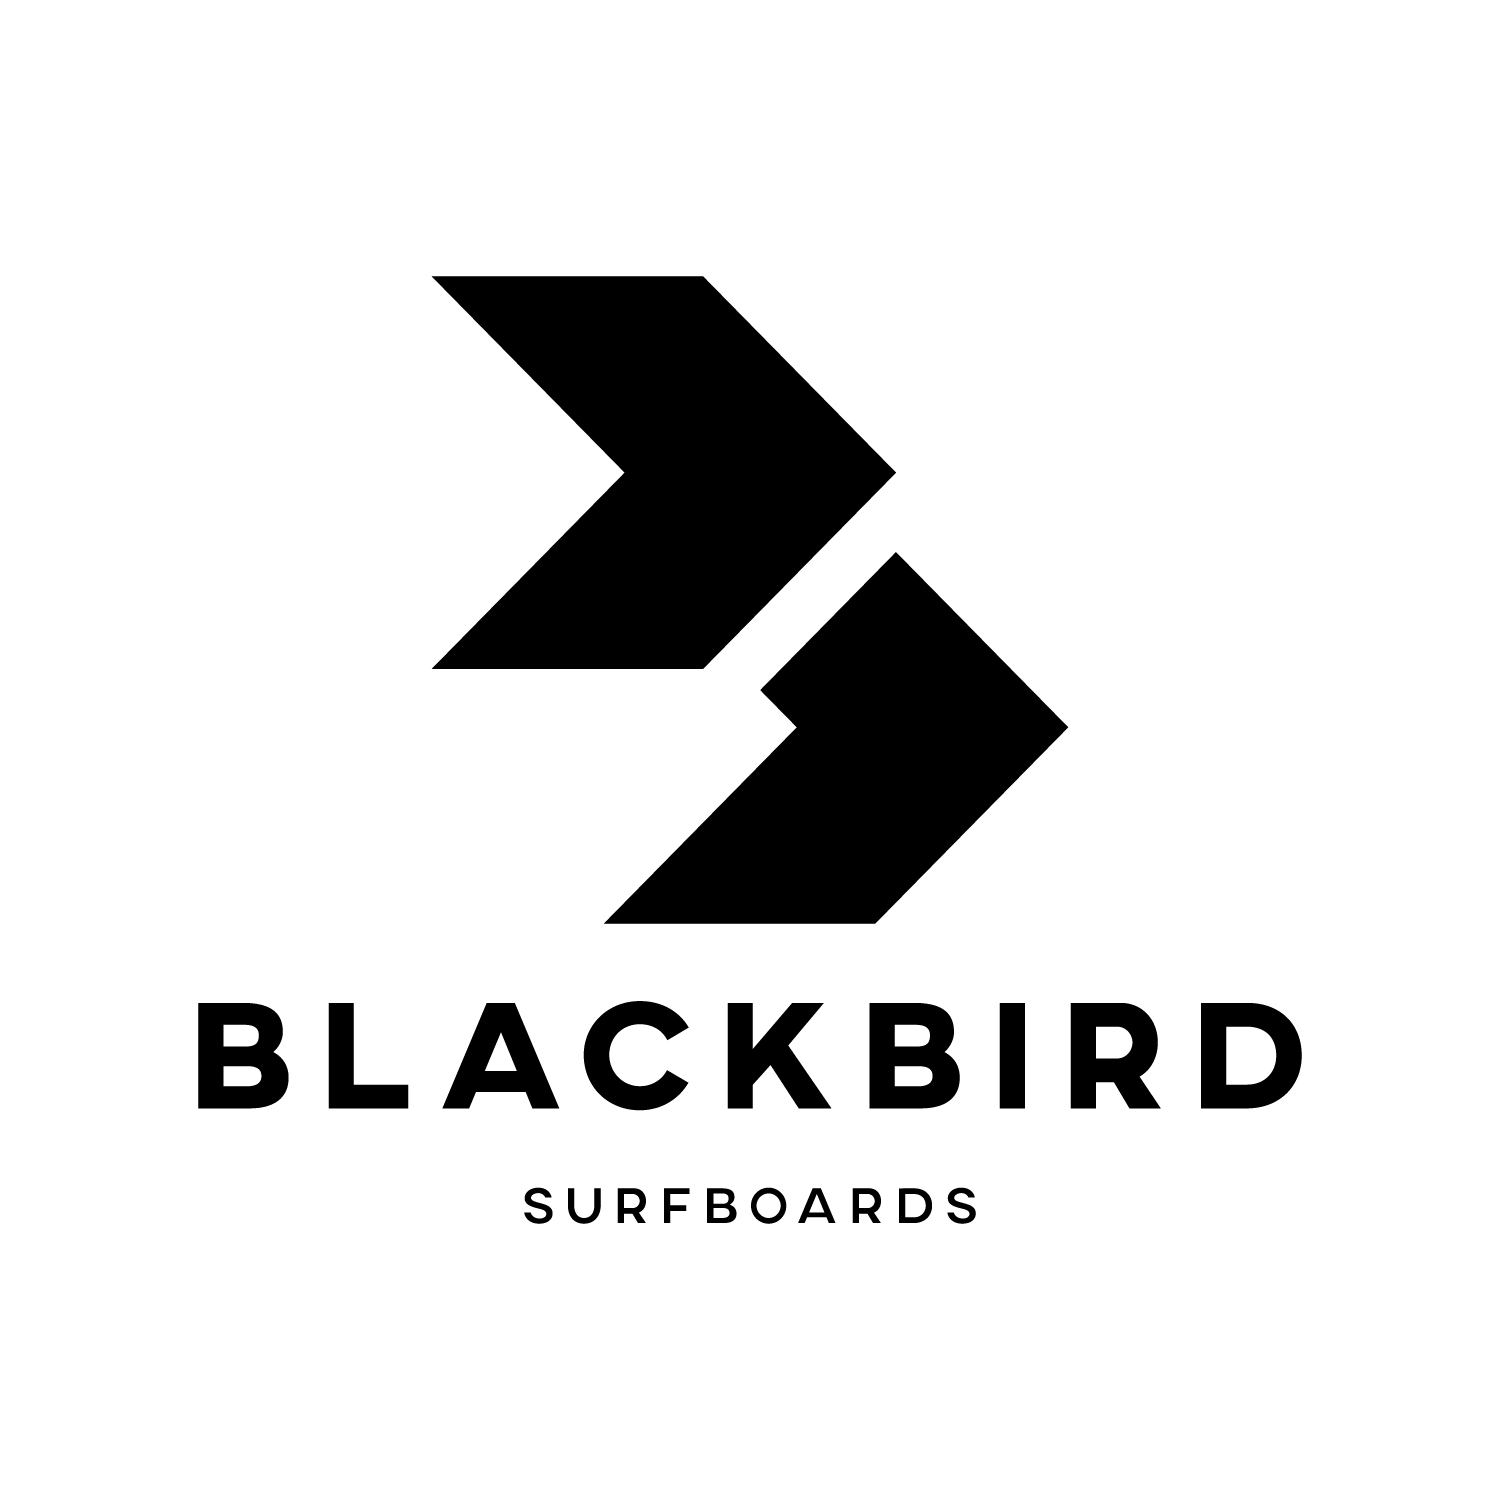 Blackbird Surfboards